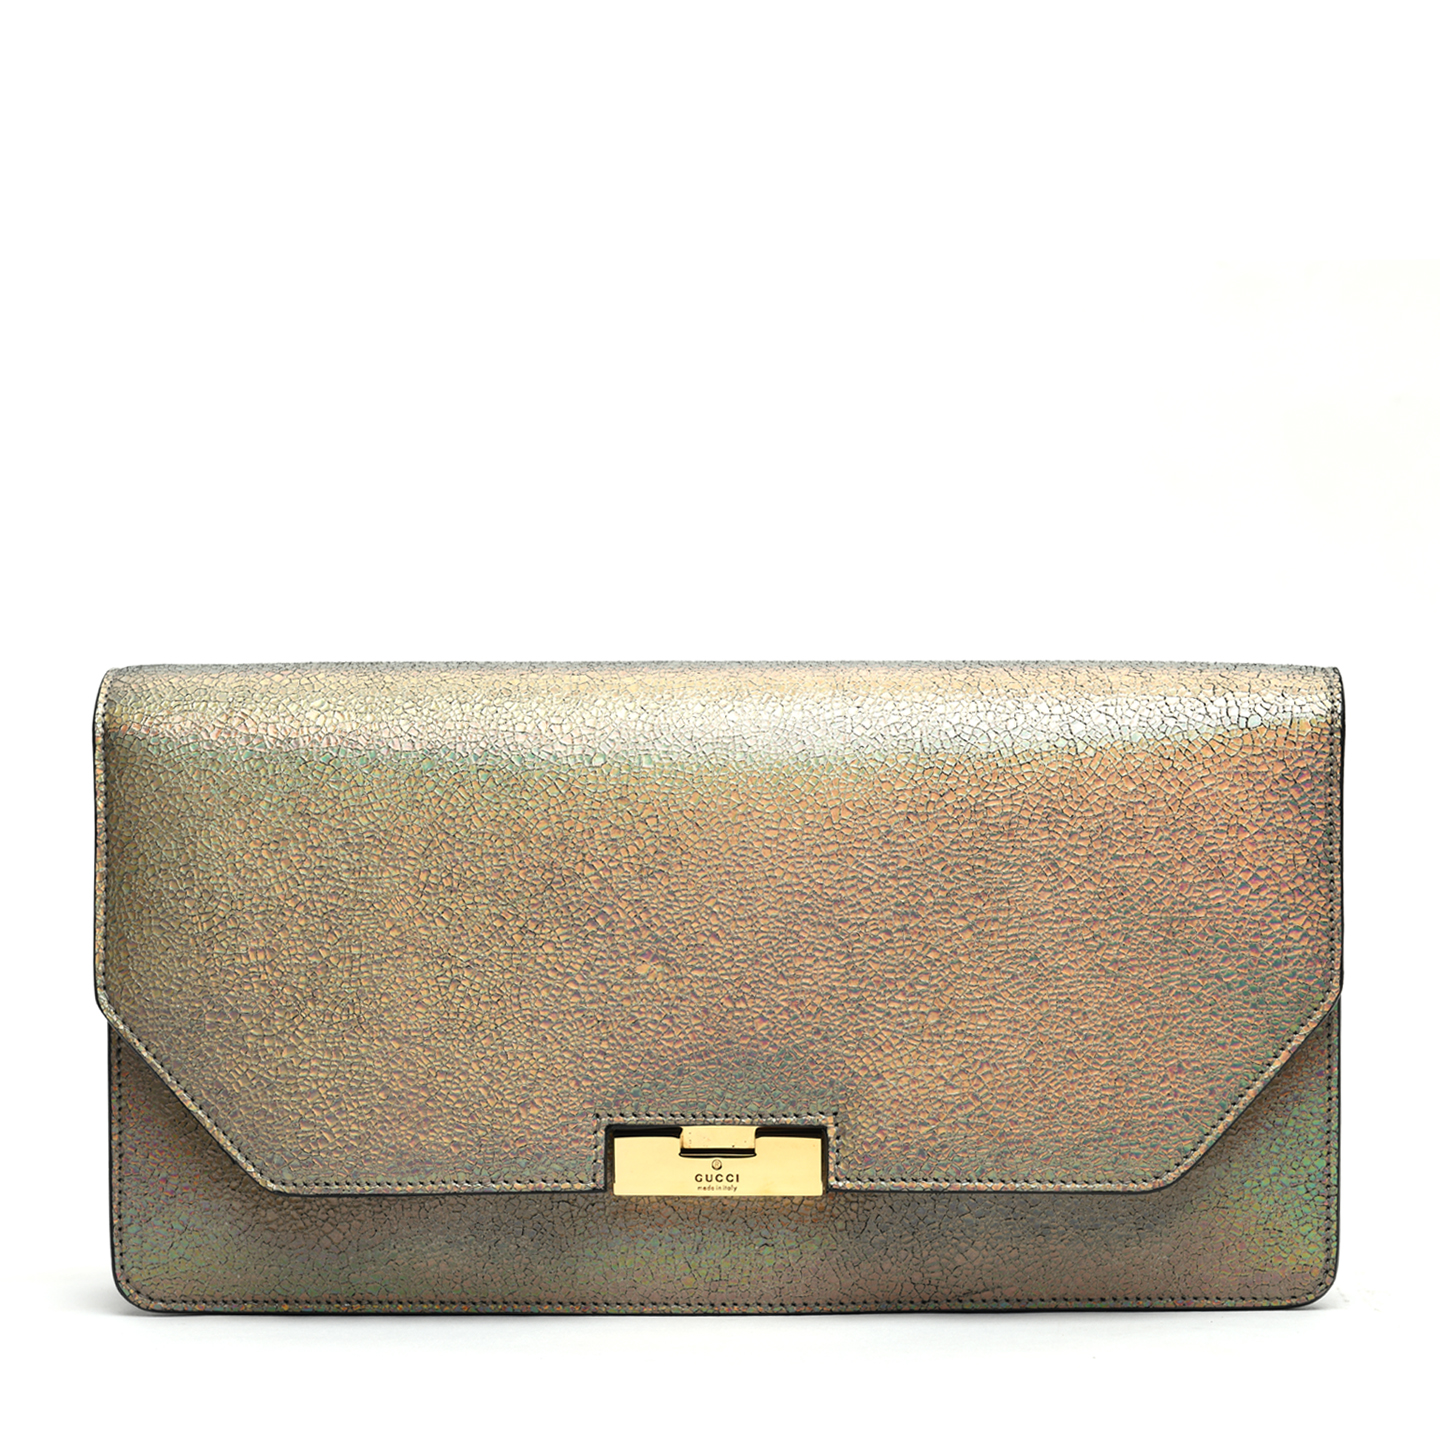 Gucci 58 Holographic Crackled Leather Clutch, Fawn 01